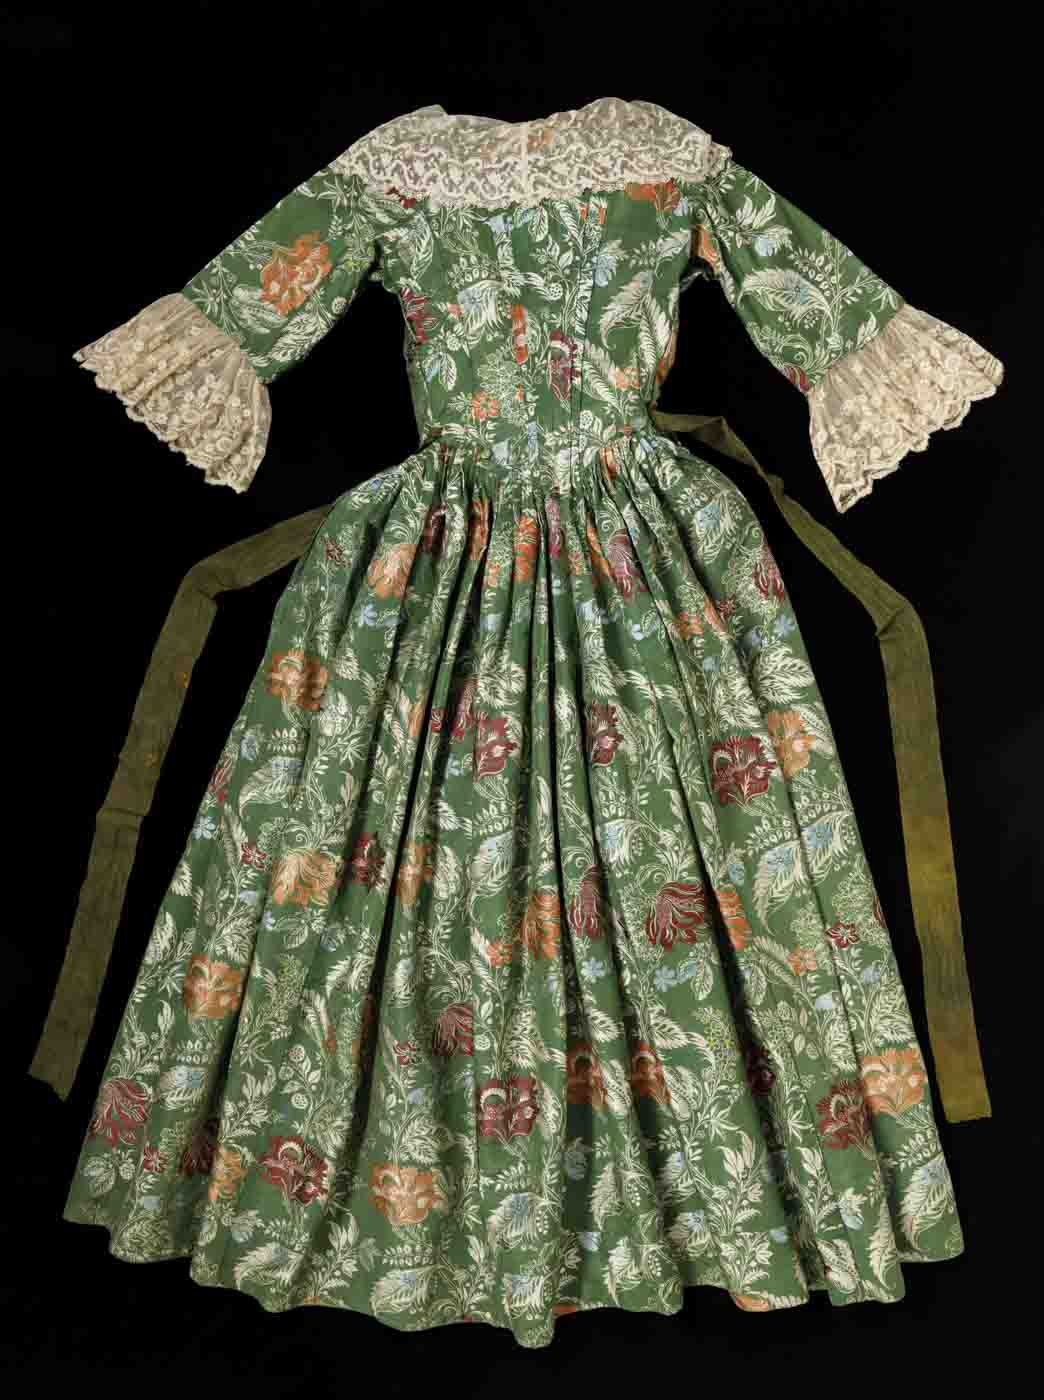 Green and floral dress with lace trim on the neckline and sleeves - click to view larger image